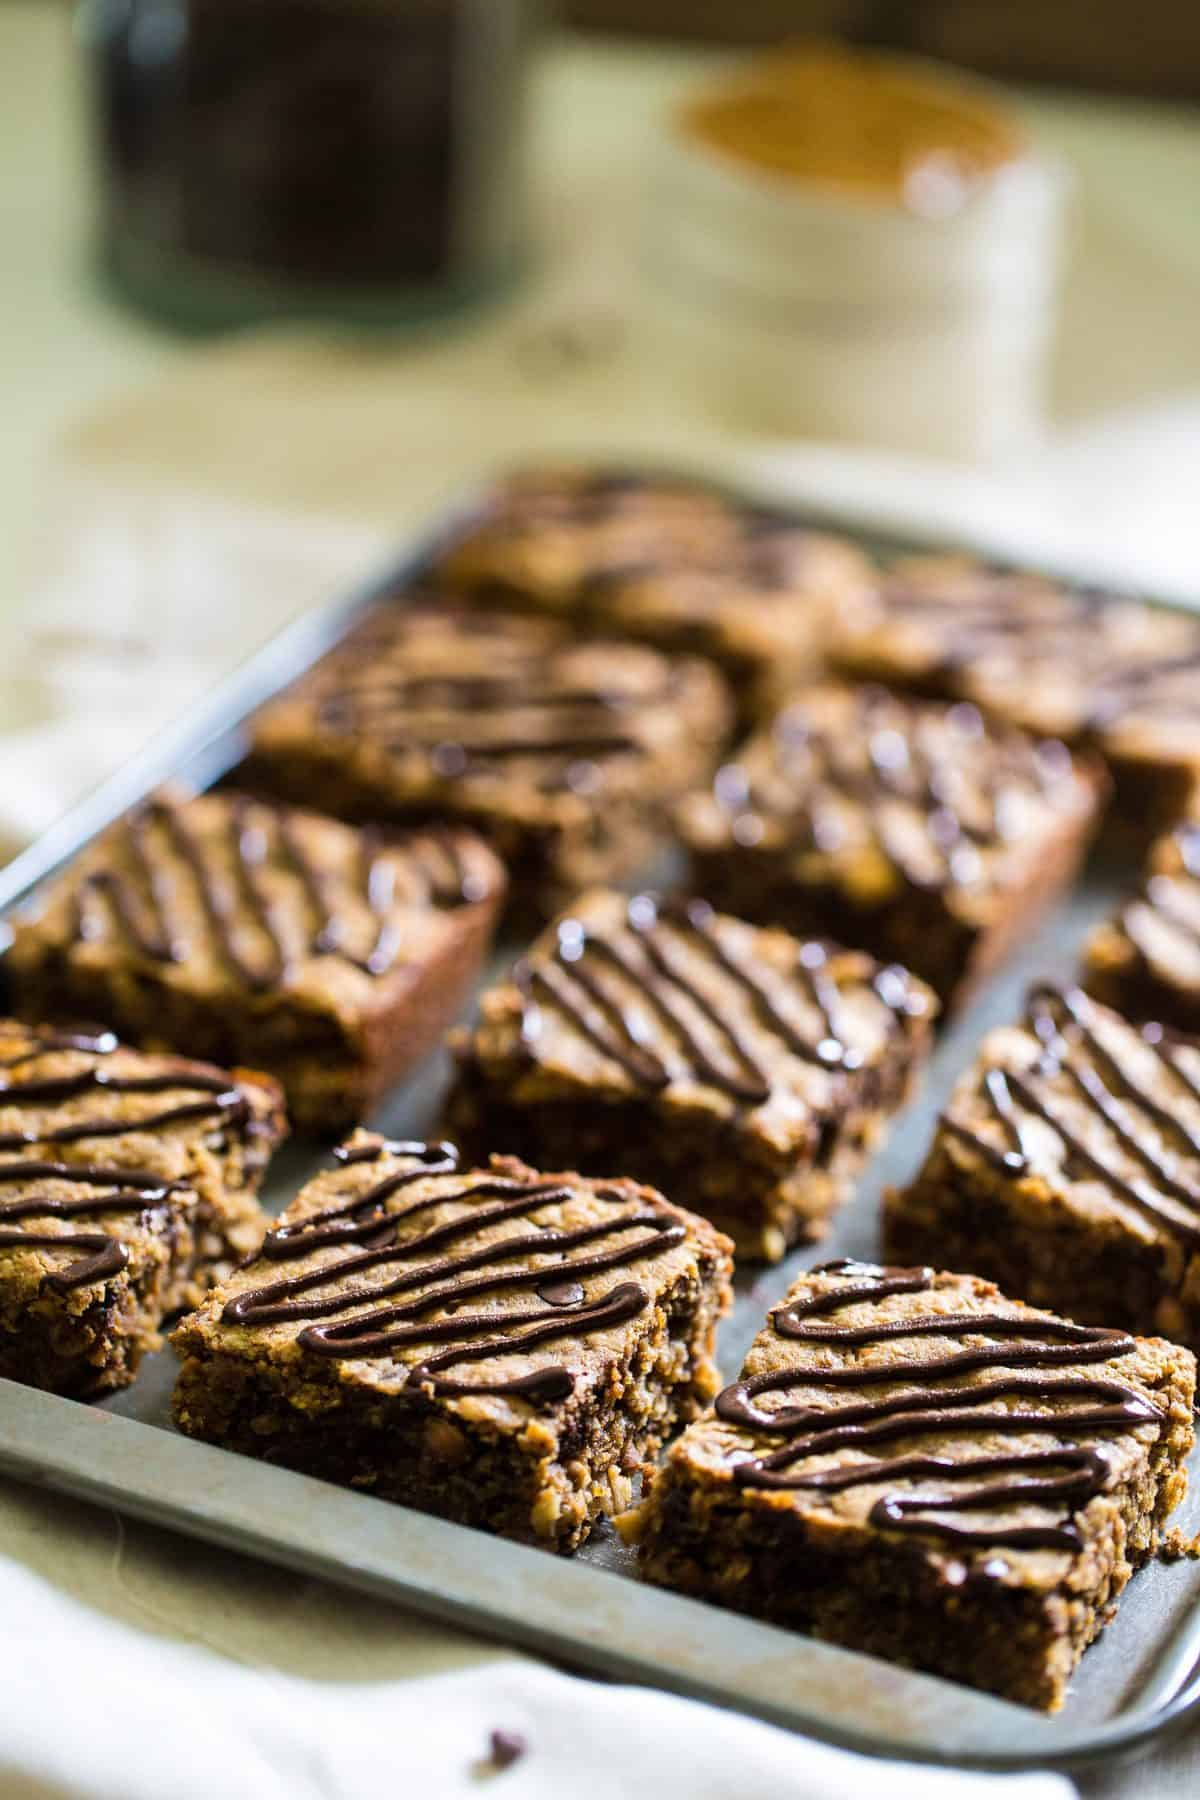 16 healthy peanut butter oatmeal breakfast bars on a baking sheet